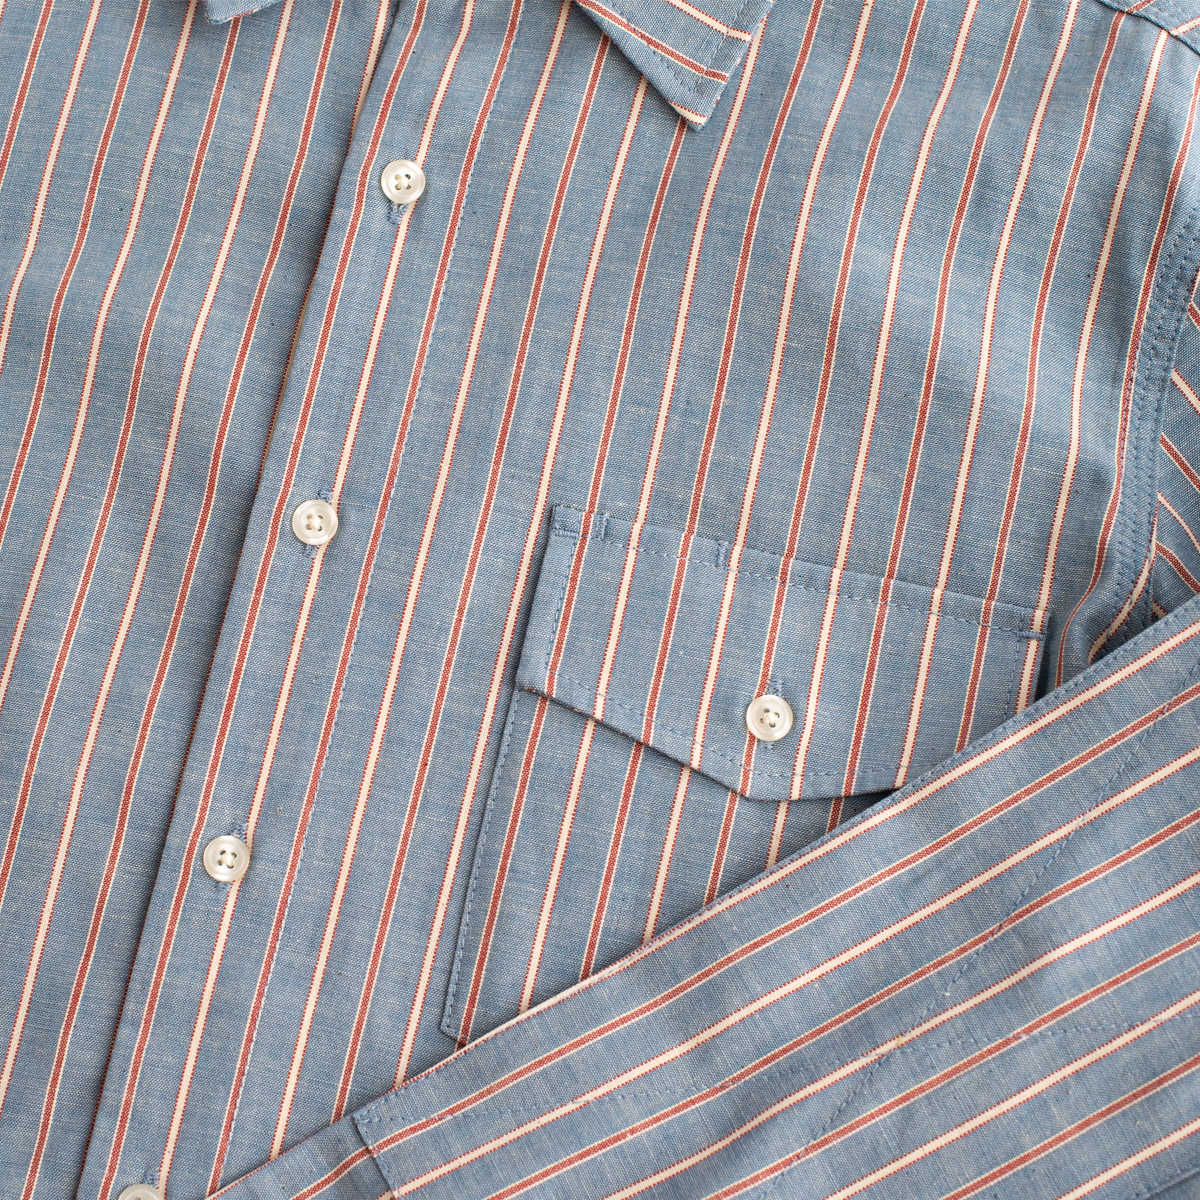 Oxford Shirt - Striped Selvedge